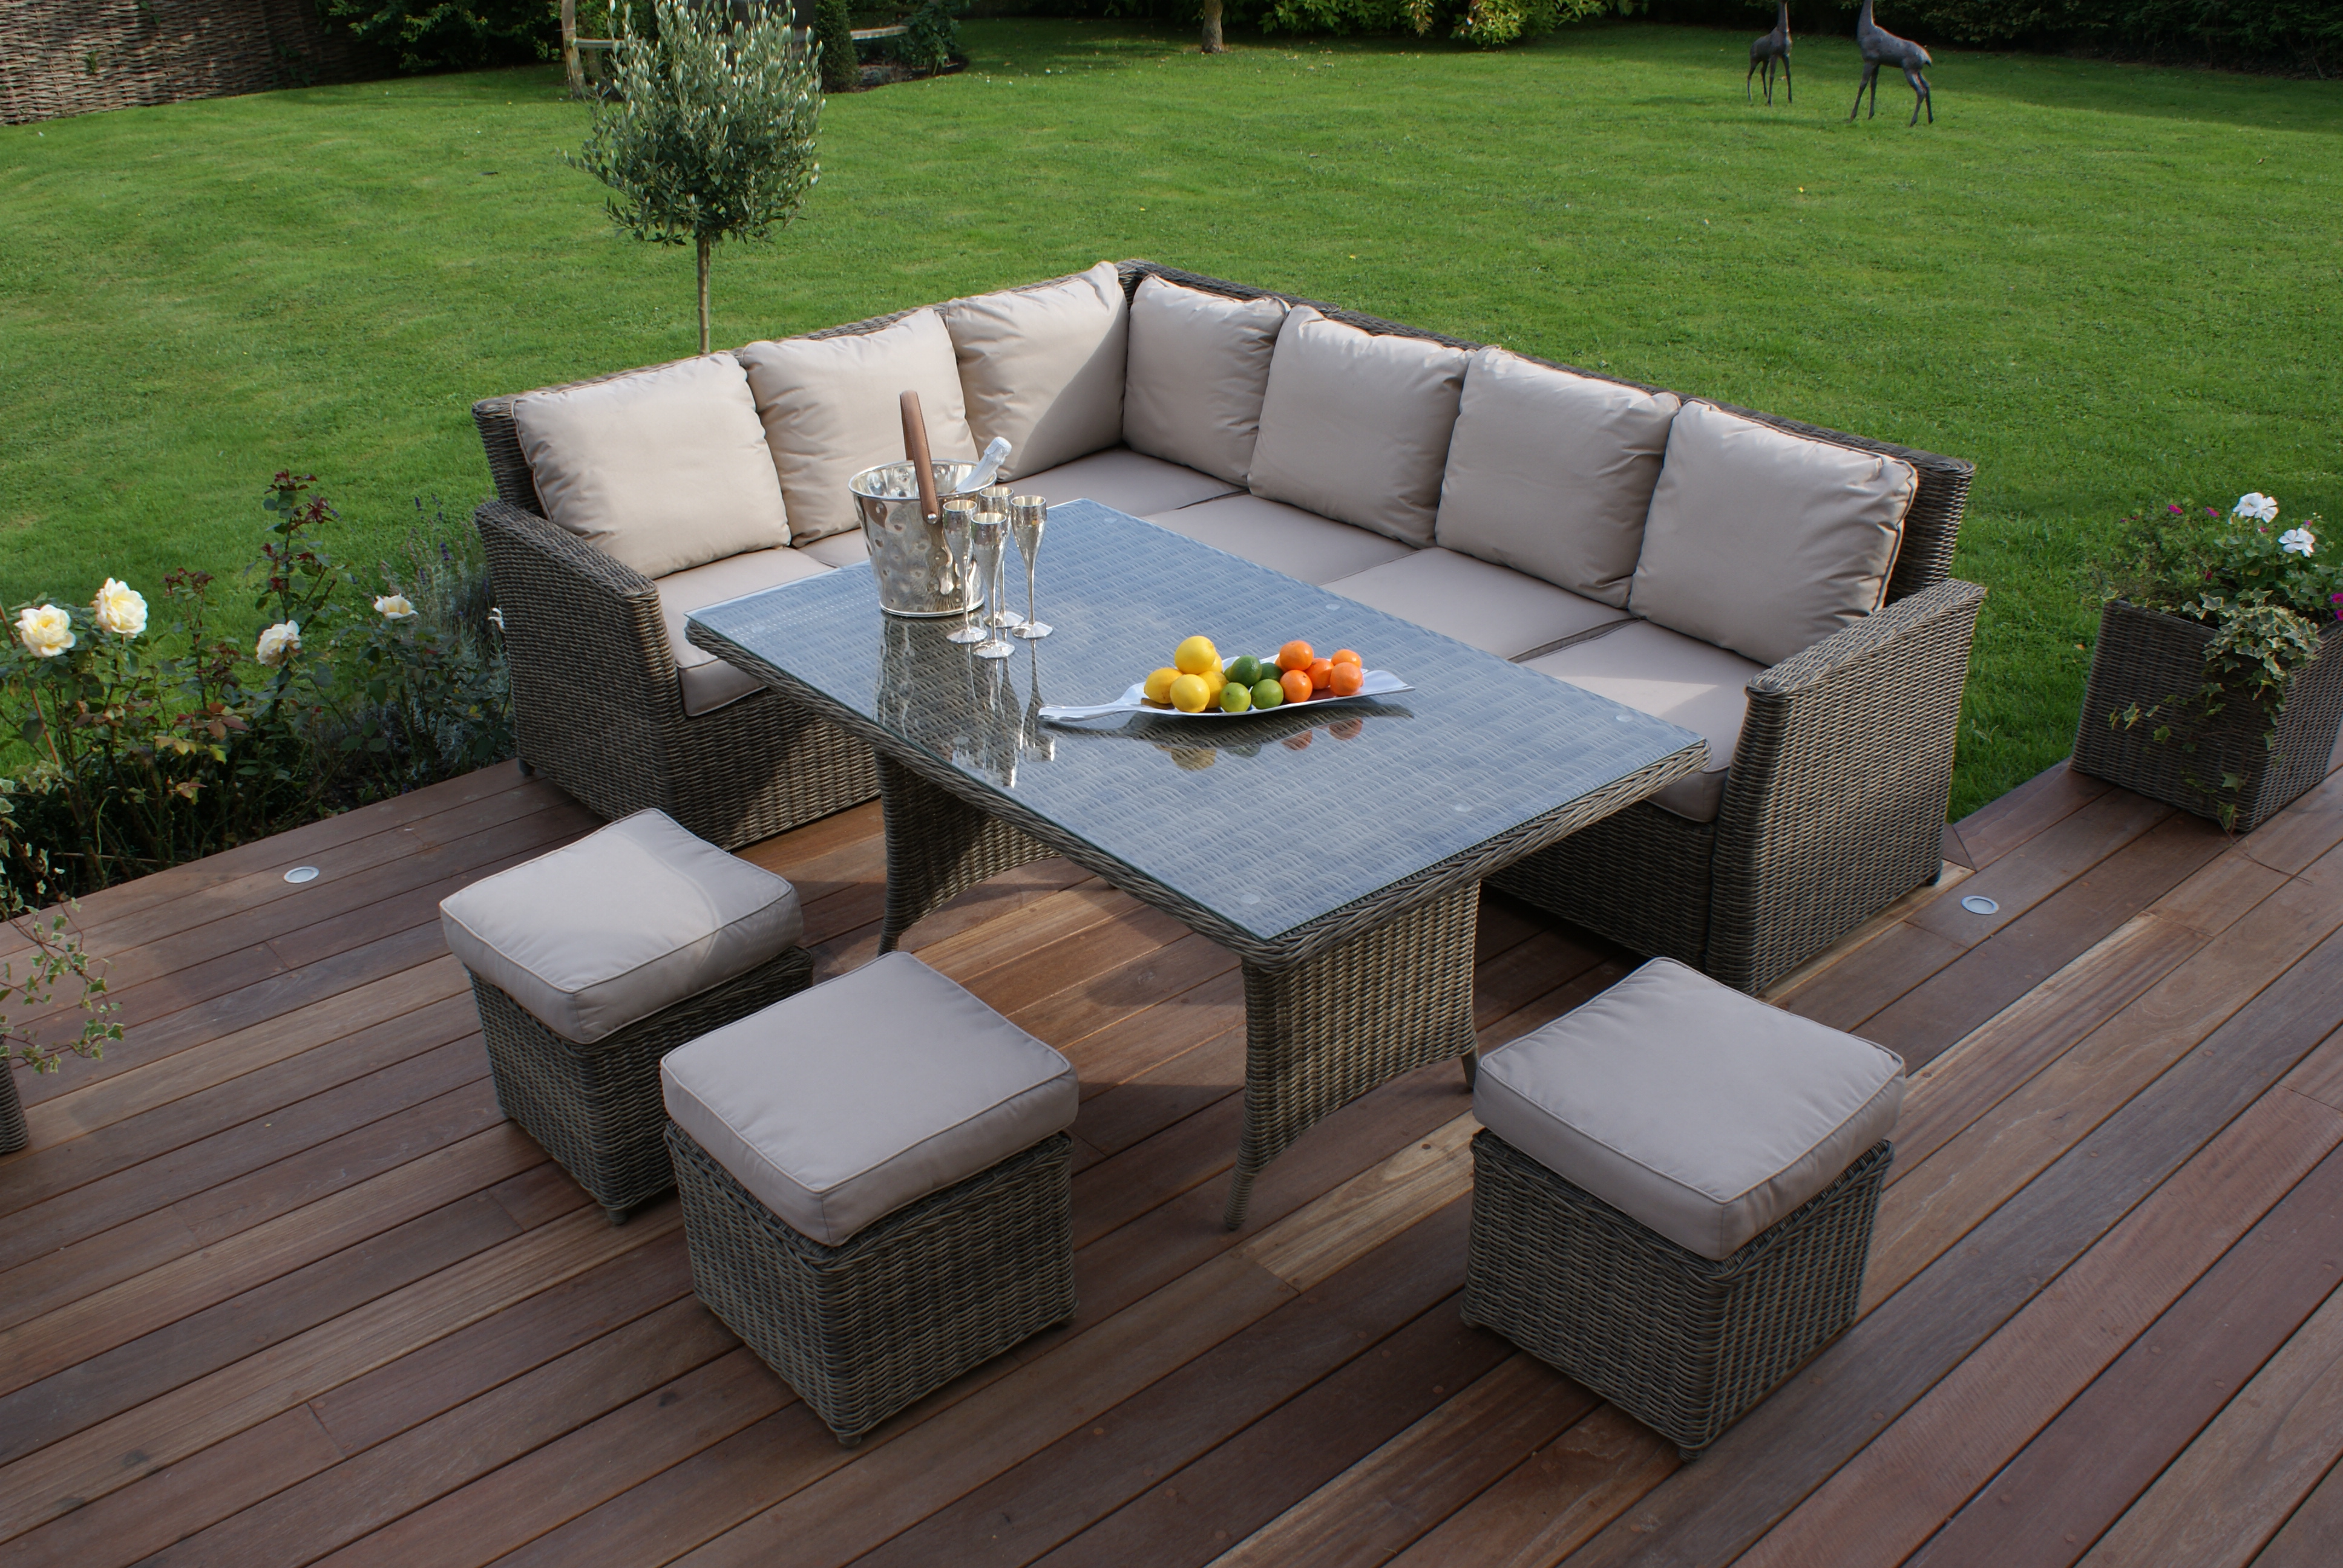 Rattan outdoor corner sofa dining set garden furniture for Outside garden furniture